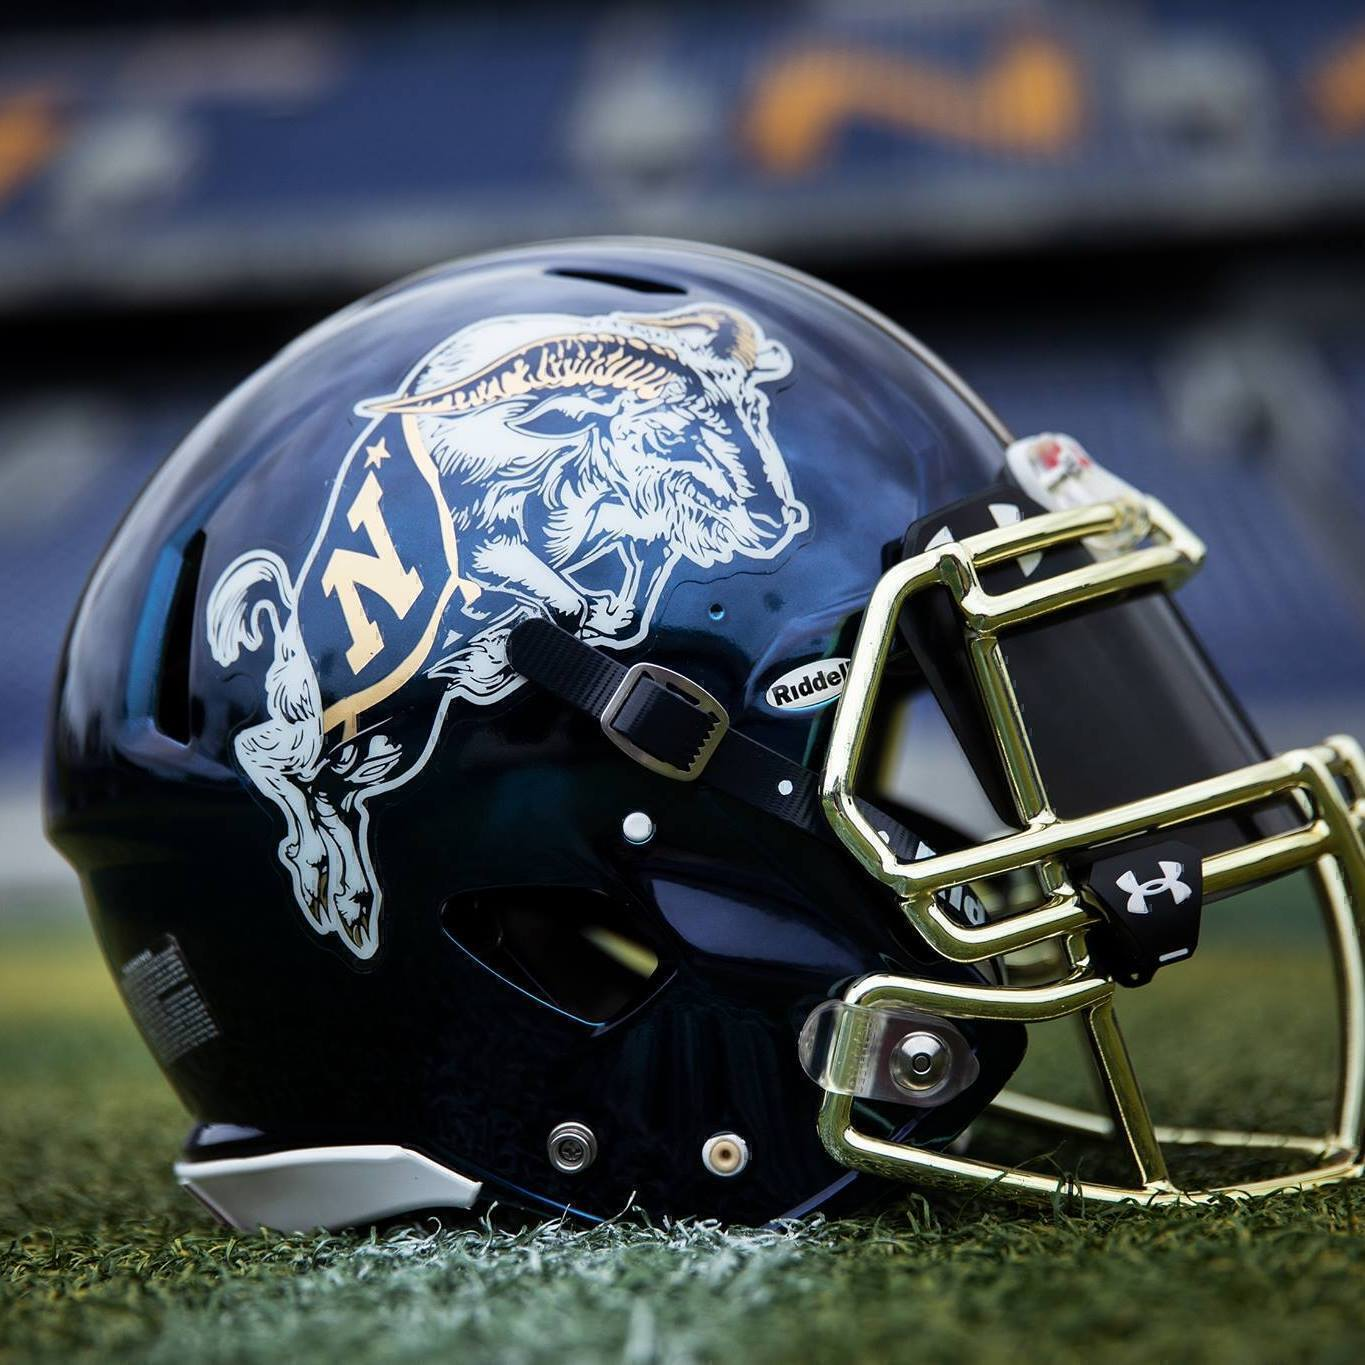 navy football helmet on the field close up